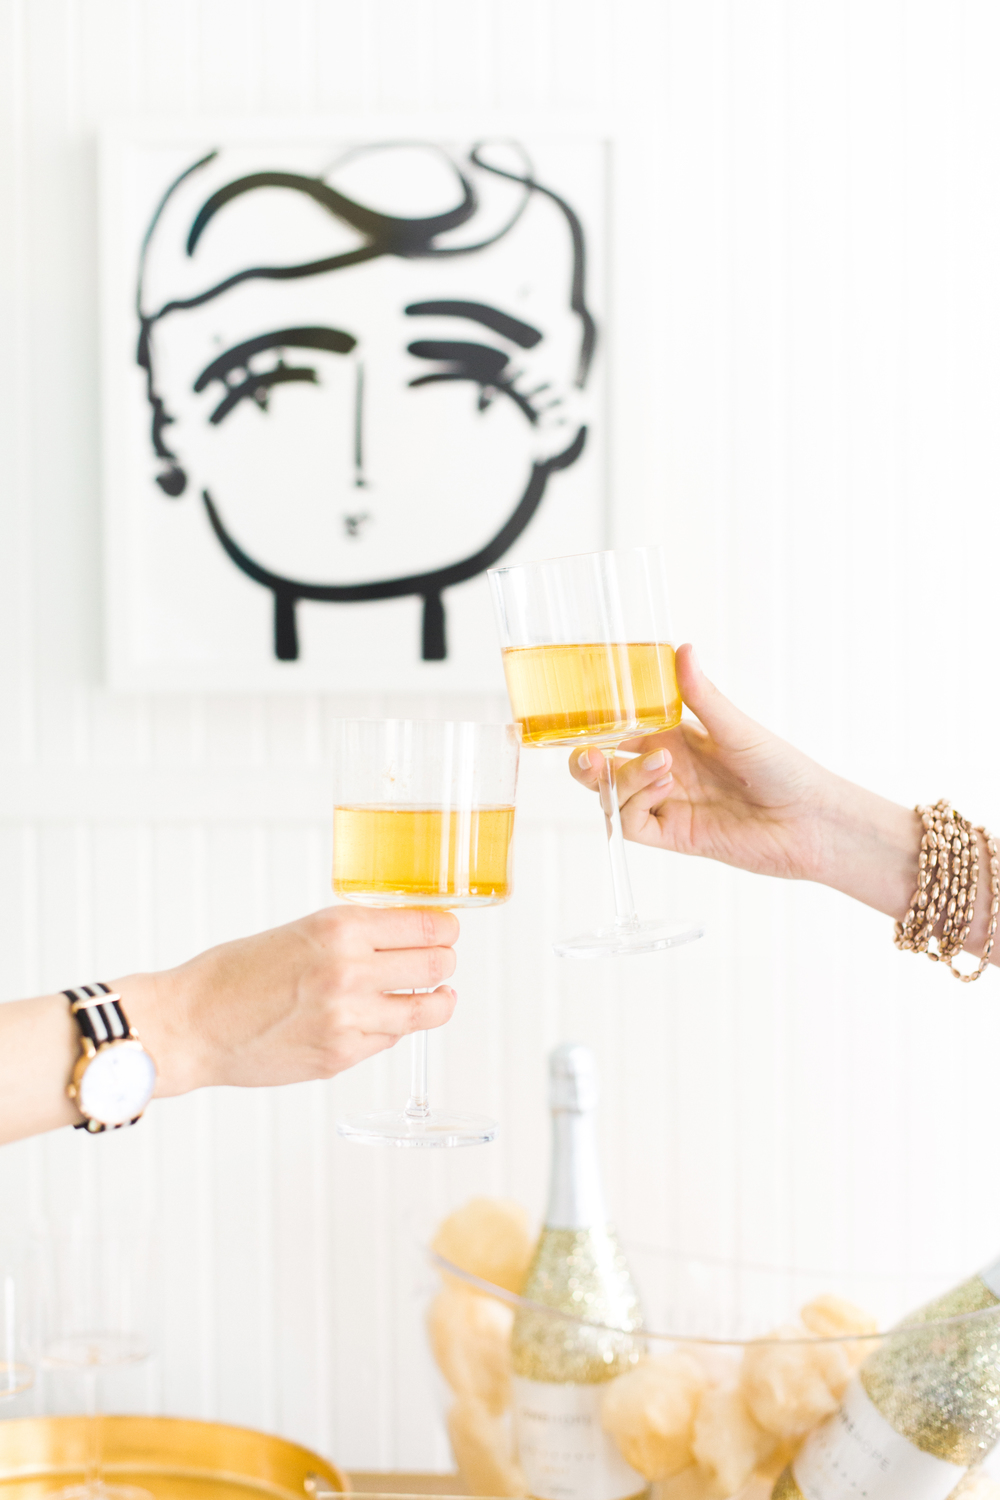 Rachel Red Photography |  Cheers to making more purchases with a purpose!